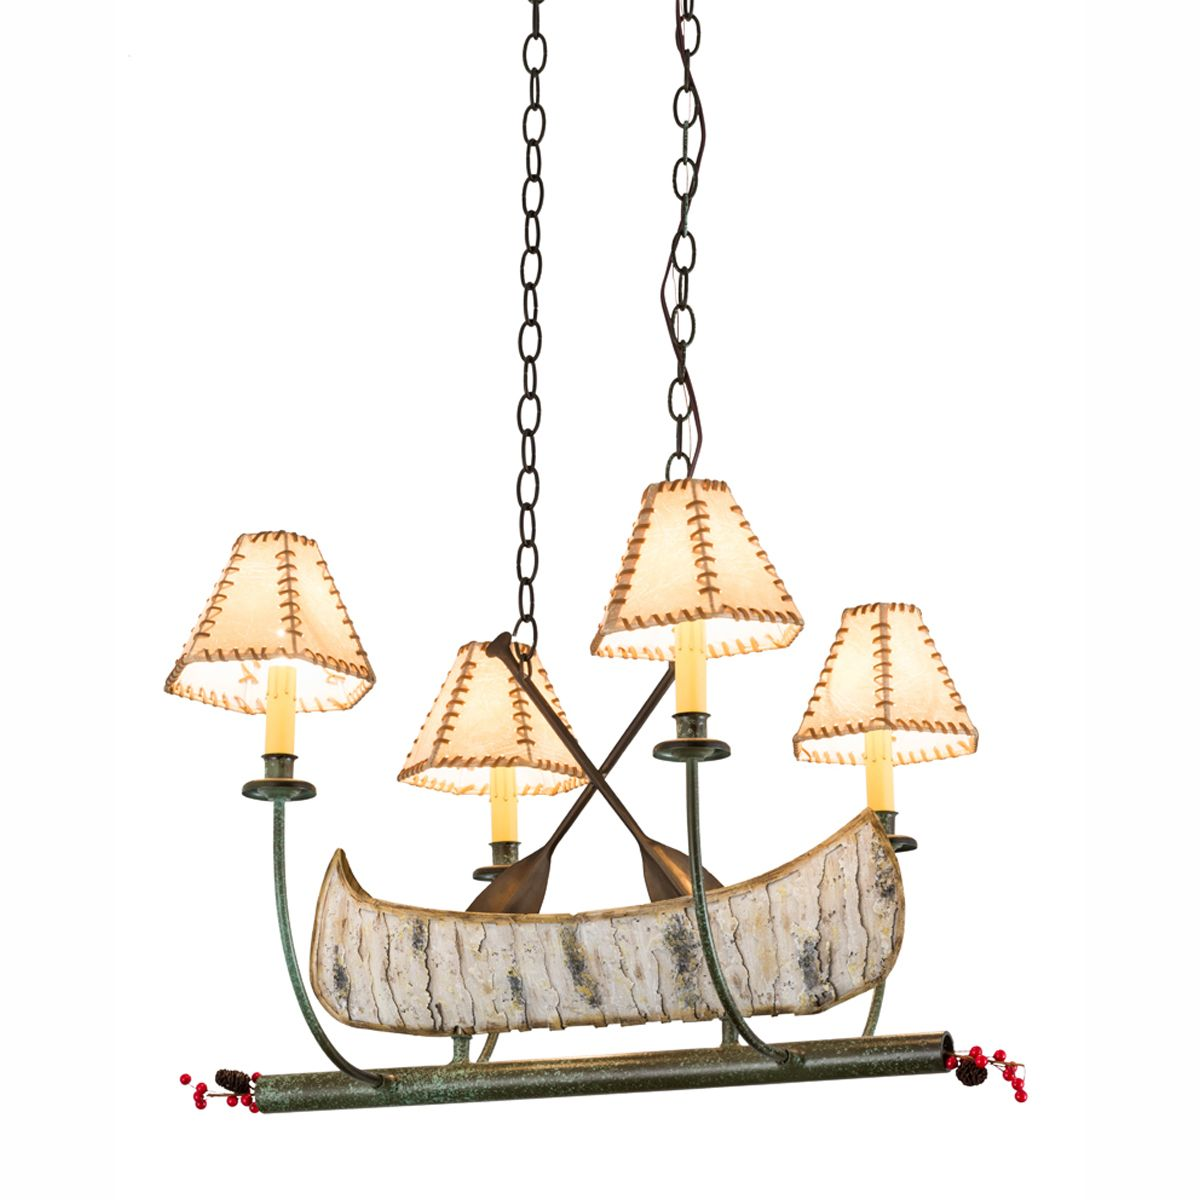 Birch Canoe with Rawhide Shades Chandelier